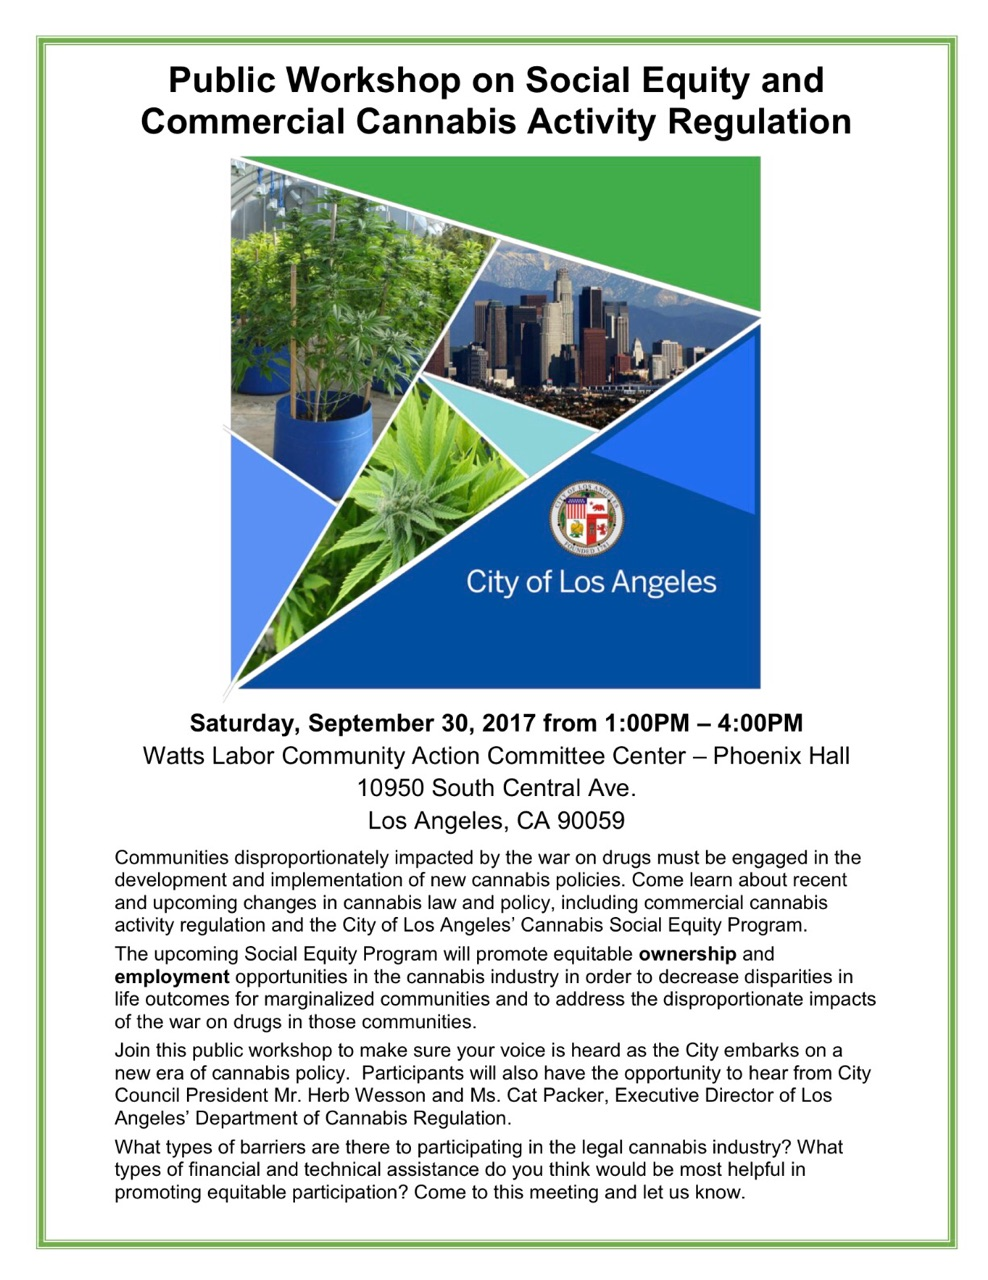 Public Workshop on Social Equity and Commercial Cannabis Activity Regulation